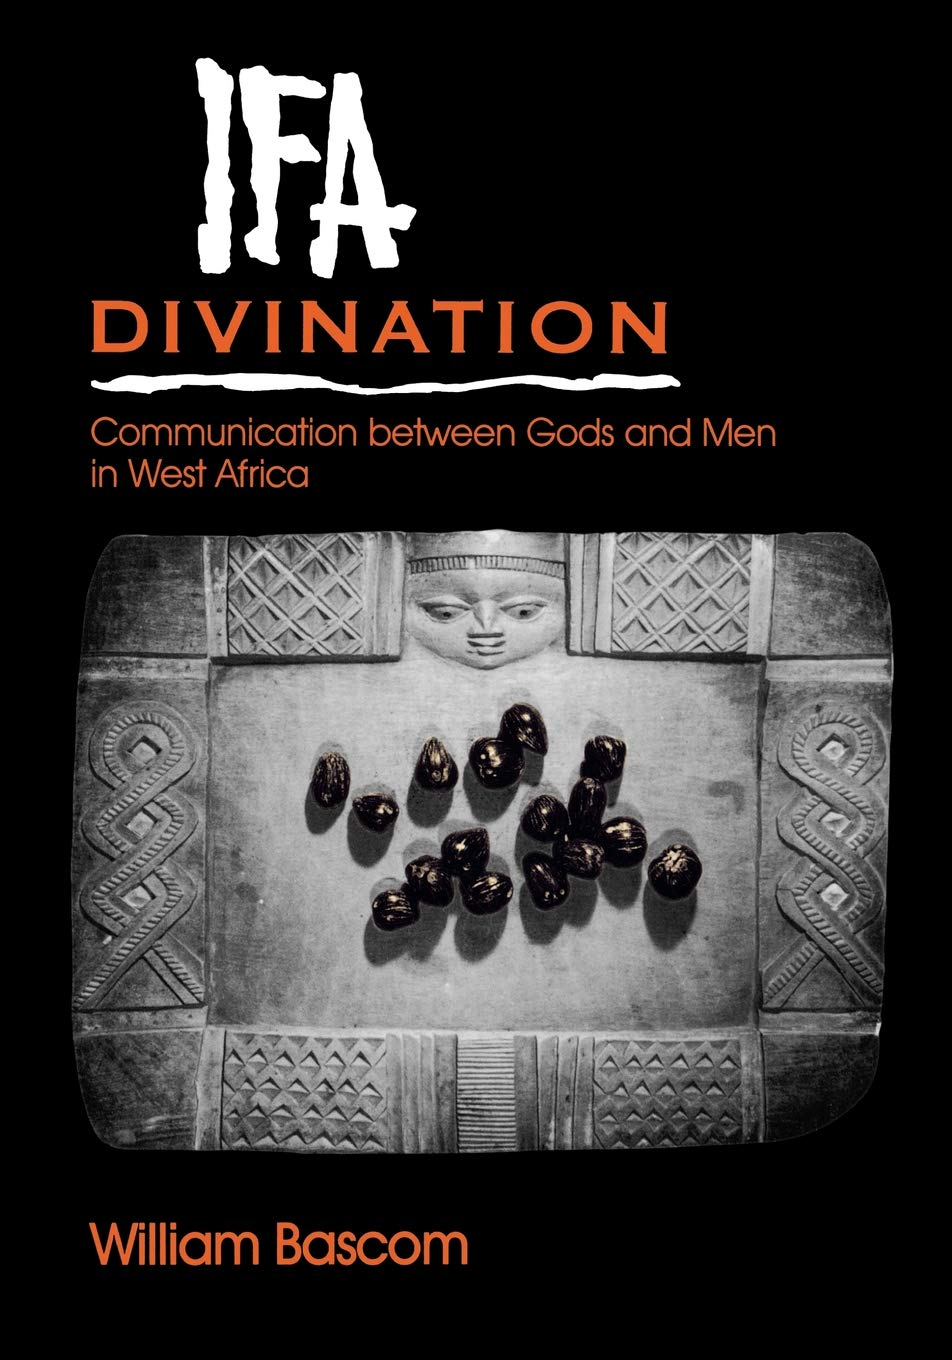 Ifa Divination: Communication Between Gods and Men in West Africa (Midland Book MB 638)